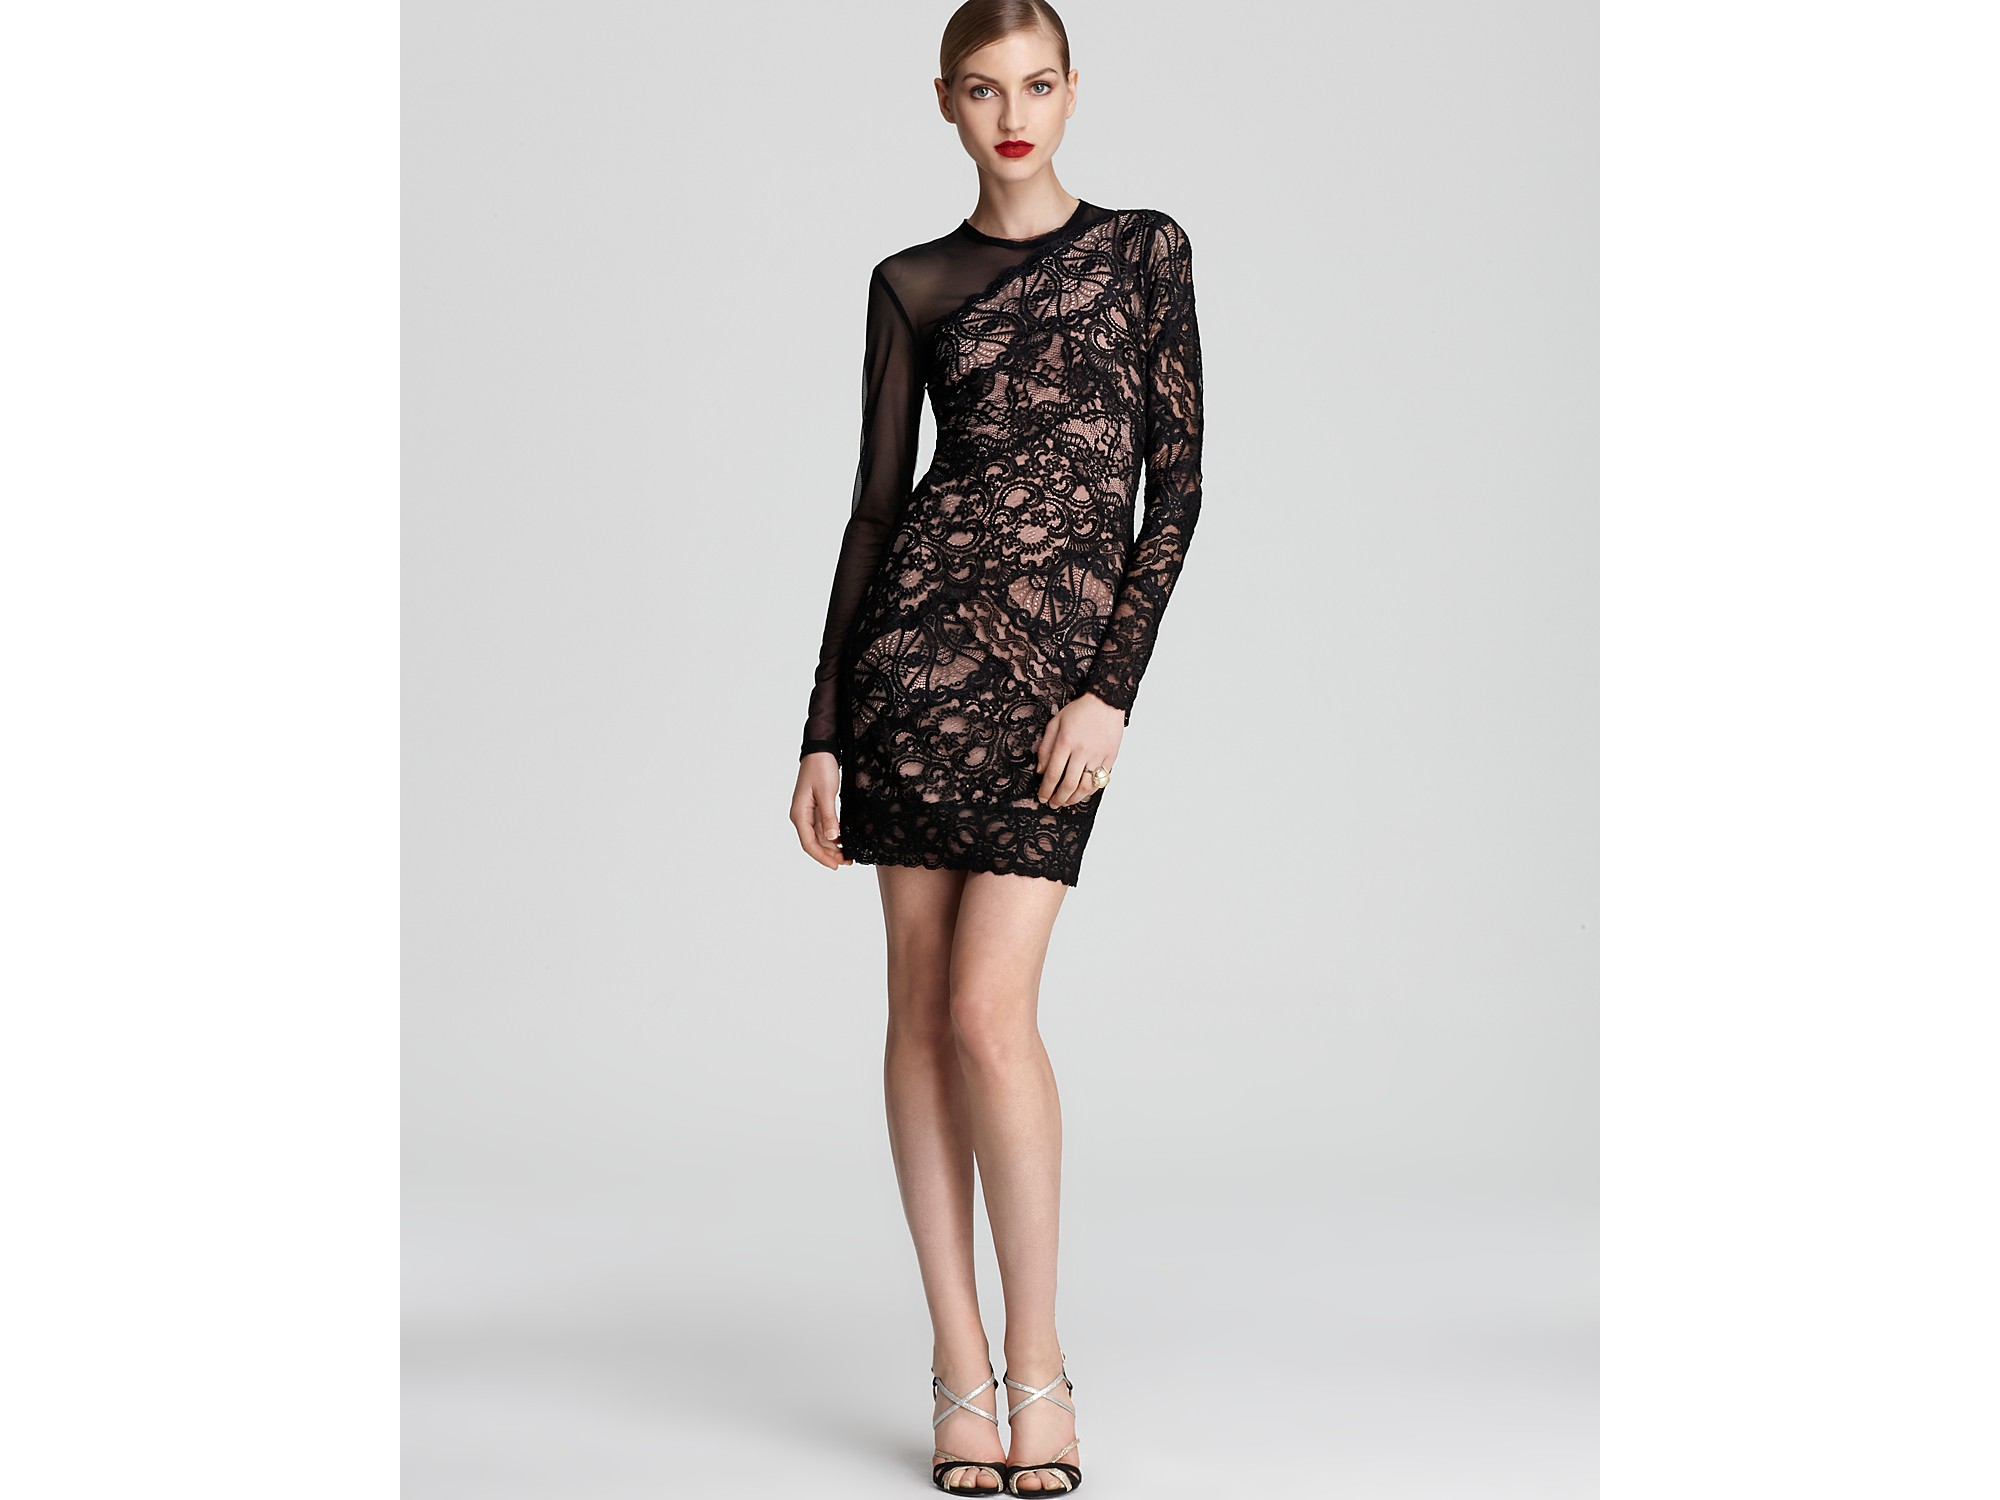 Nicole miller Lace Dress Long Sleeve Mesh in Black | Lyst